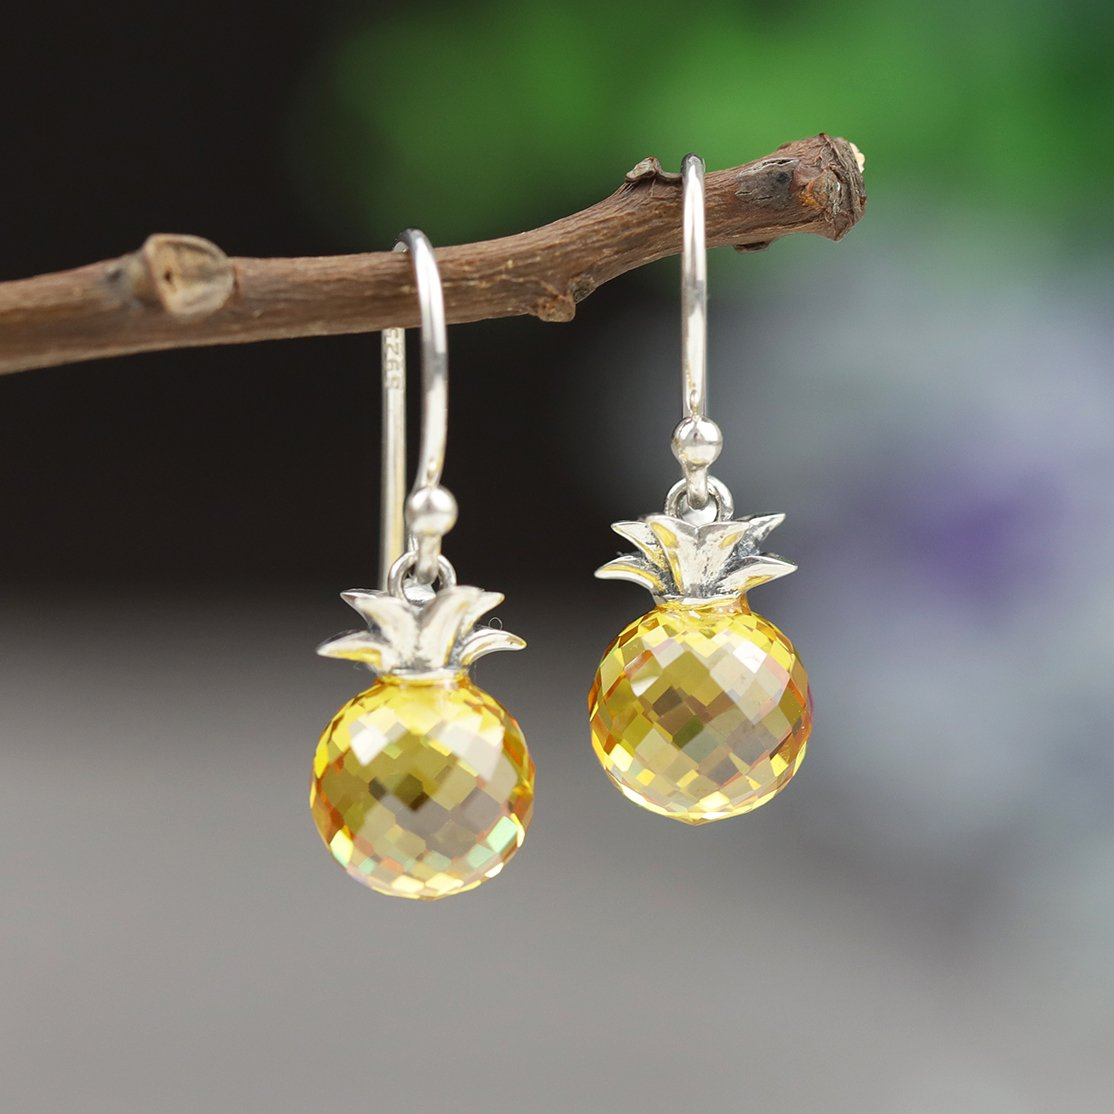 Stunning Pineapple Drop Earrings